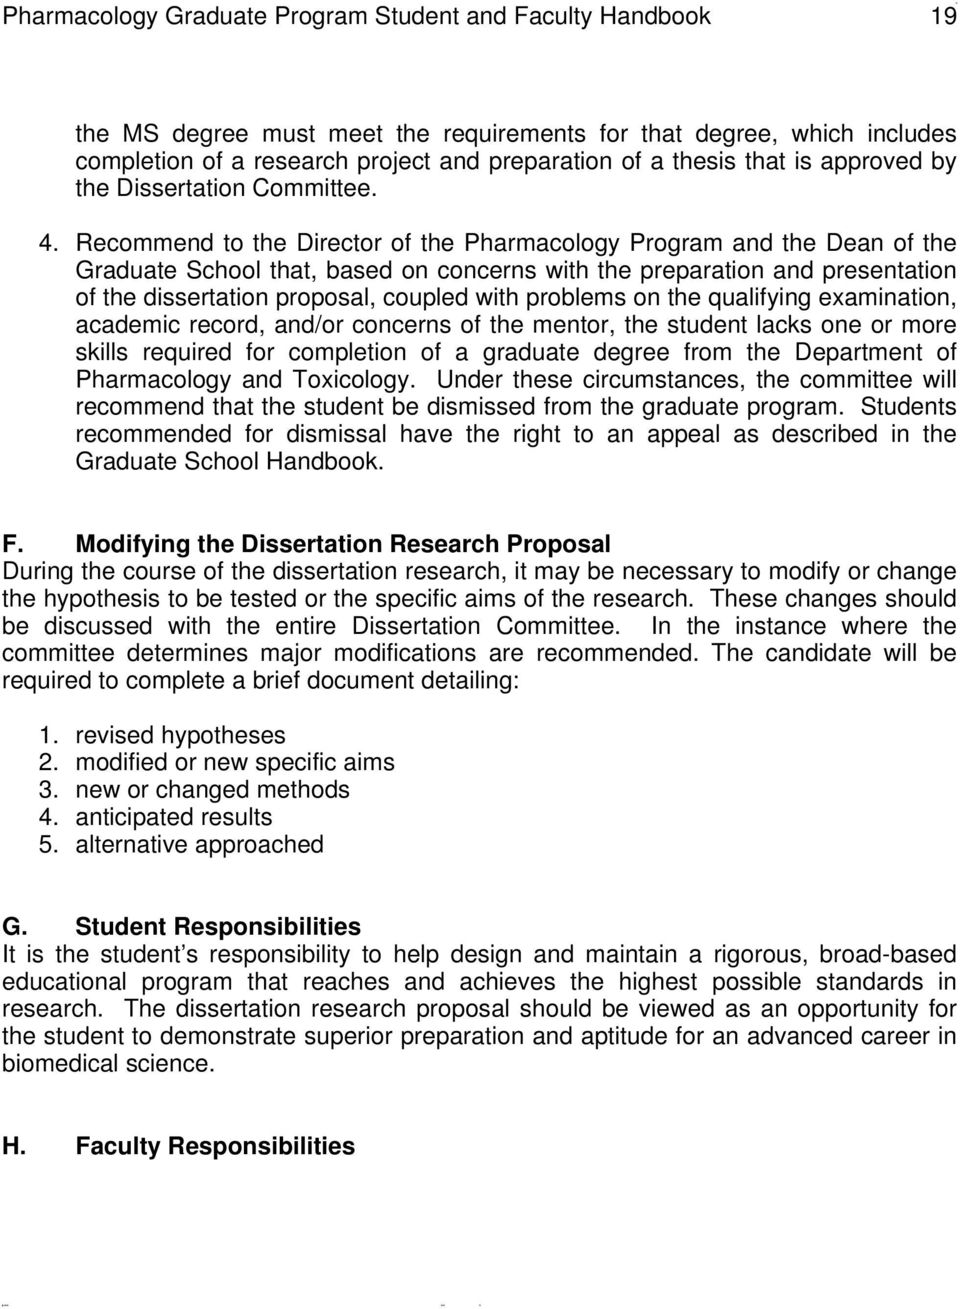 Recommend to the Director of the Pharmacology Program and the Dean of the Graduate School that, based on concerns with the preparation and presentation of the dissertation proposal, coupled with